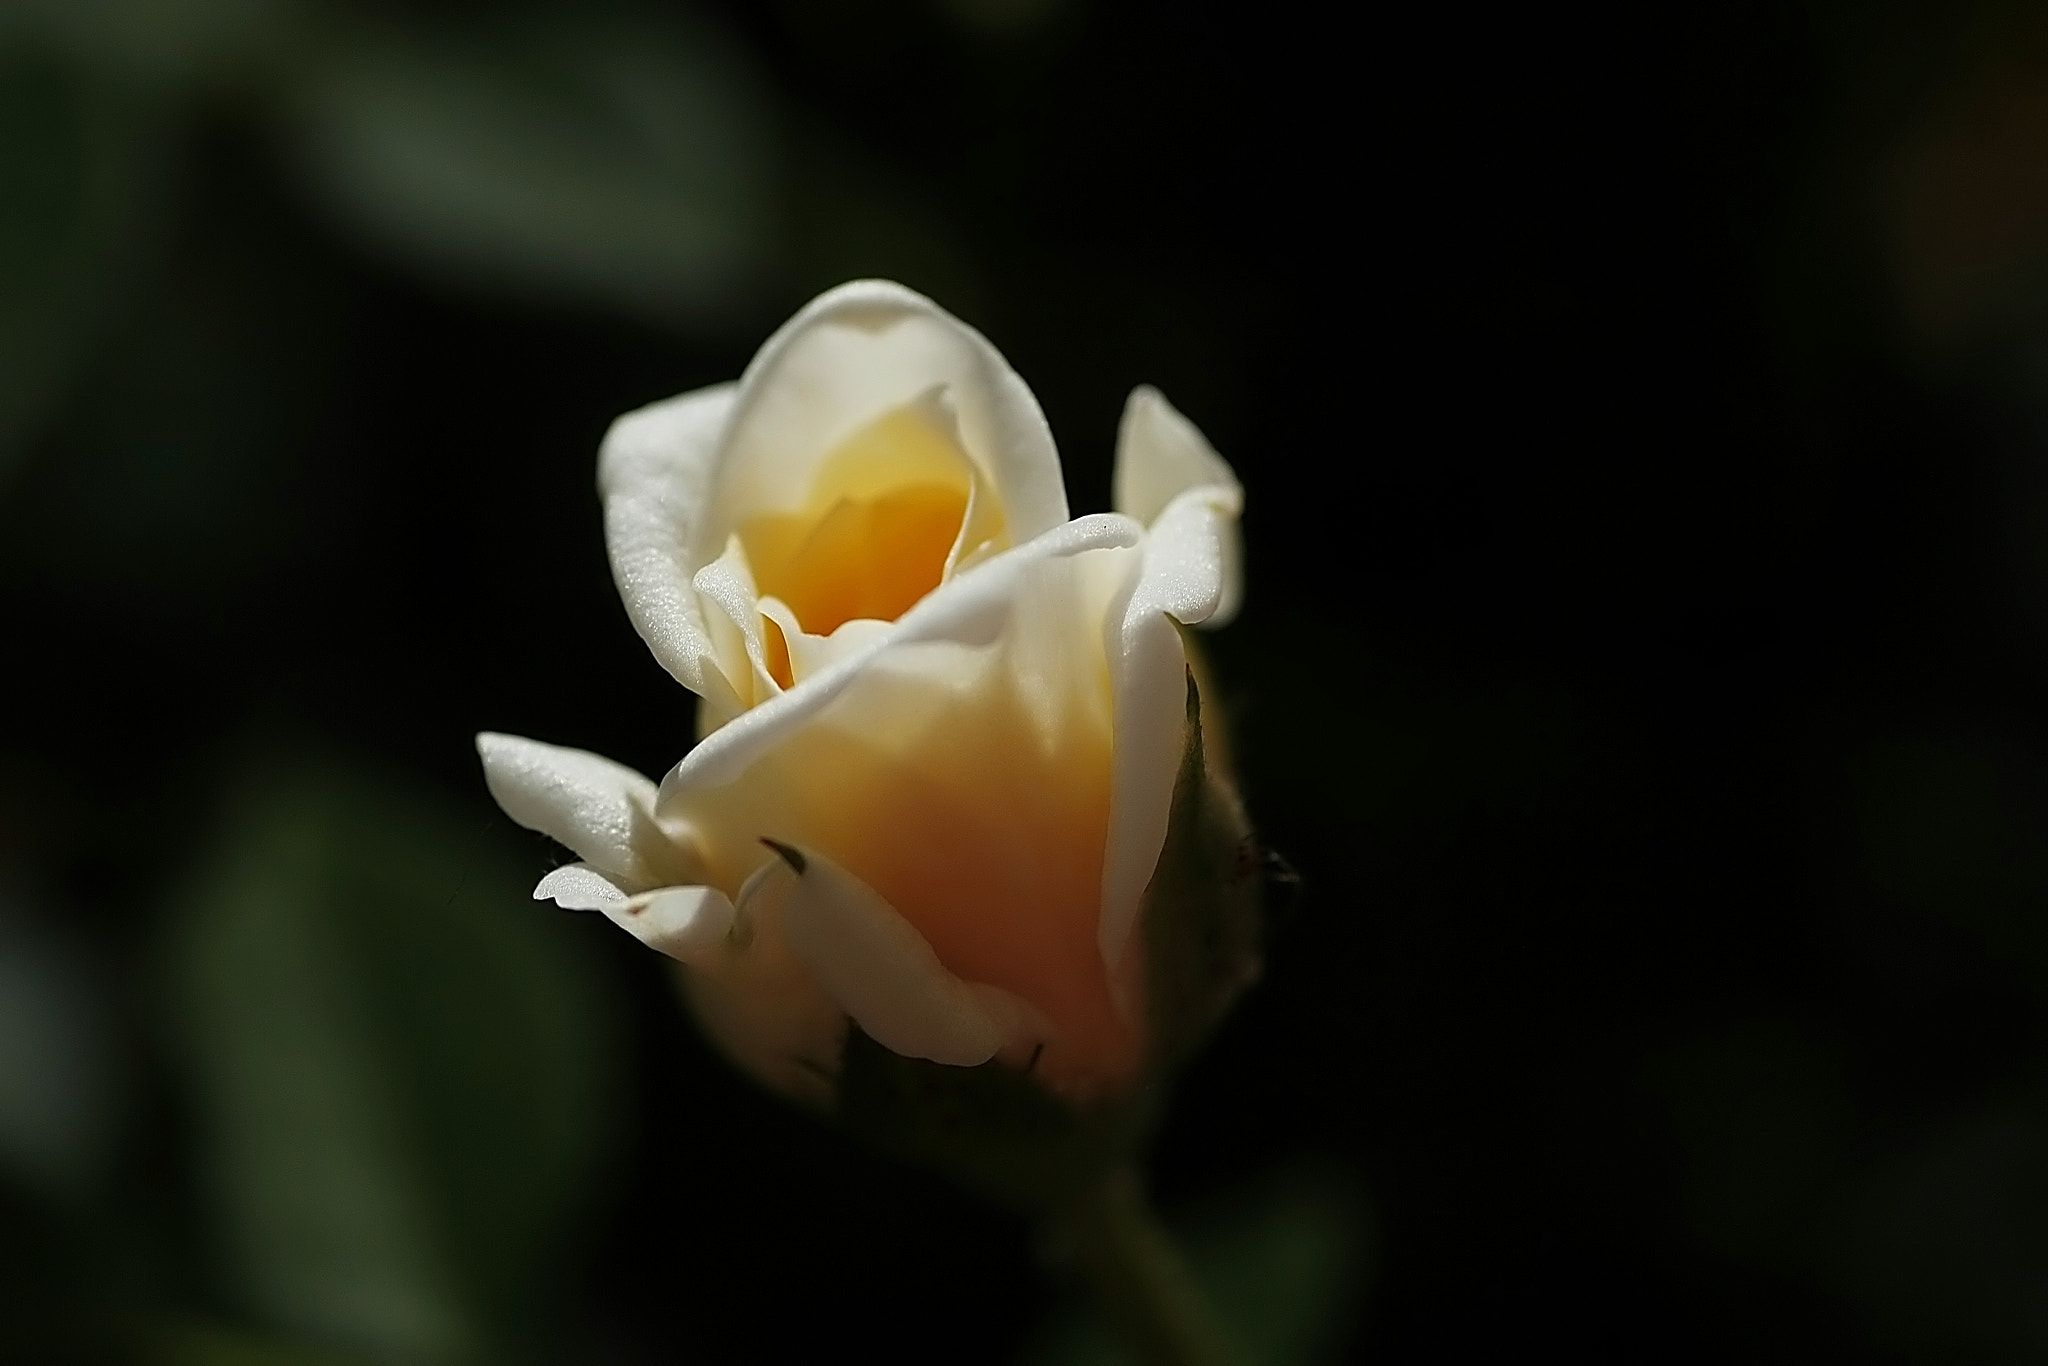 Photograph Rose .:DREAM:. by Frank Weil a. Rh. on 500px